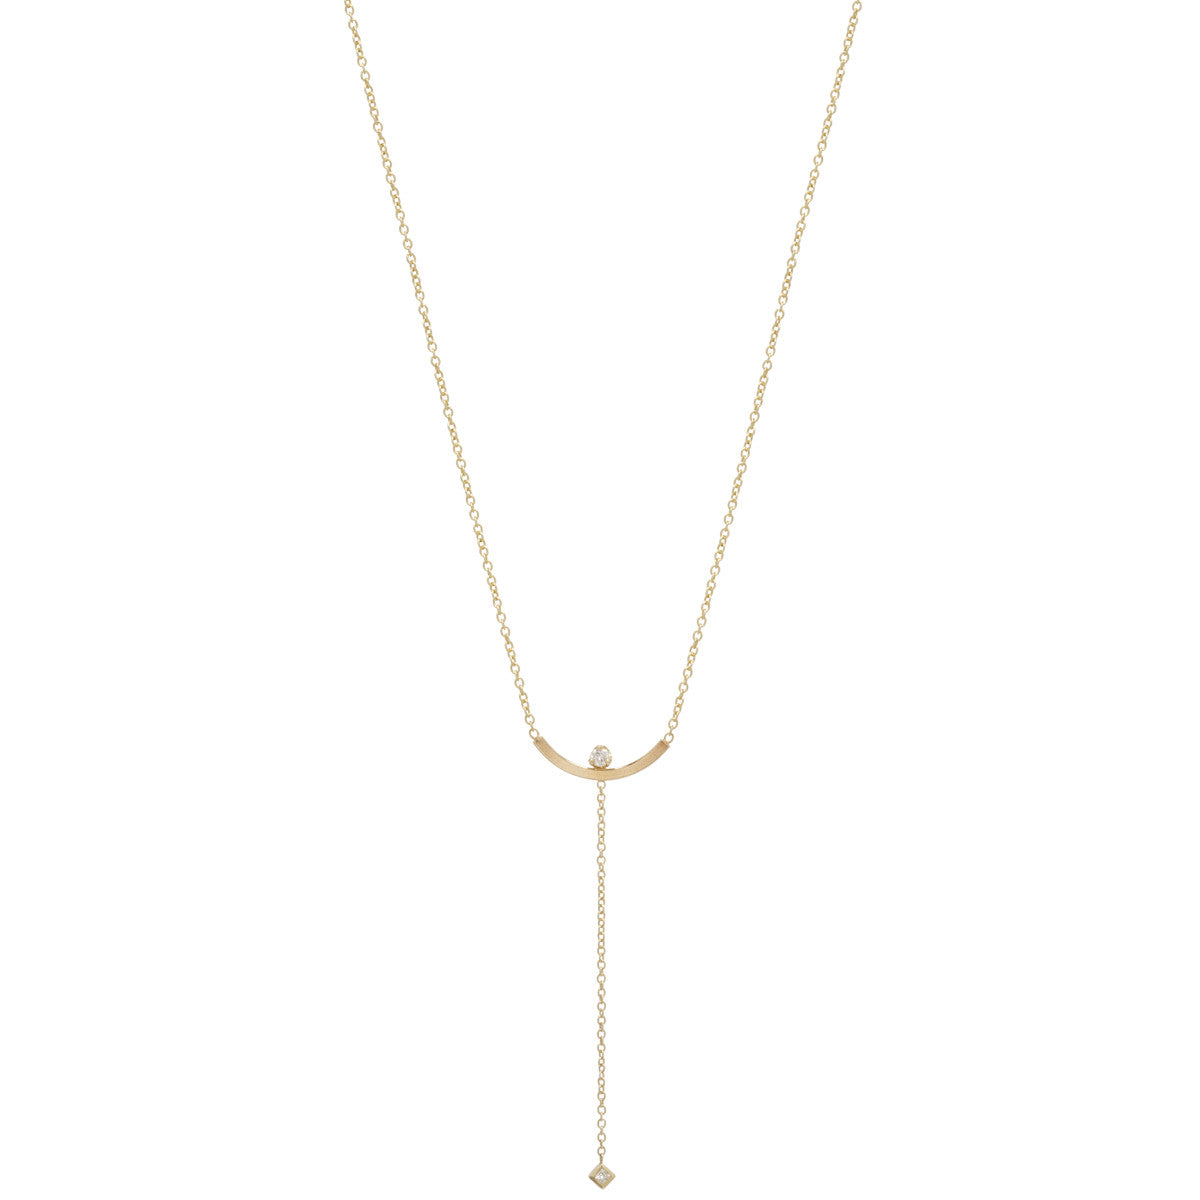 Zoë Chicco 14kt Yellow Gold Curved Bar Mixed Diamond Lariat Necklace